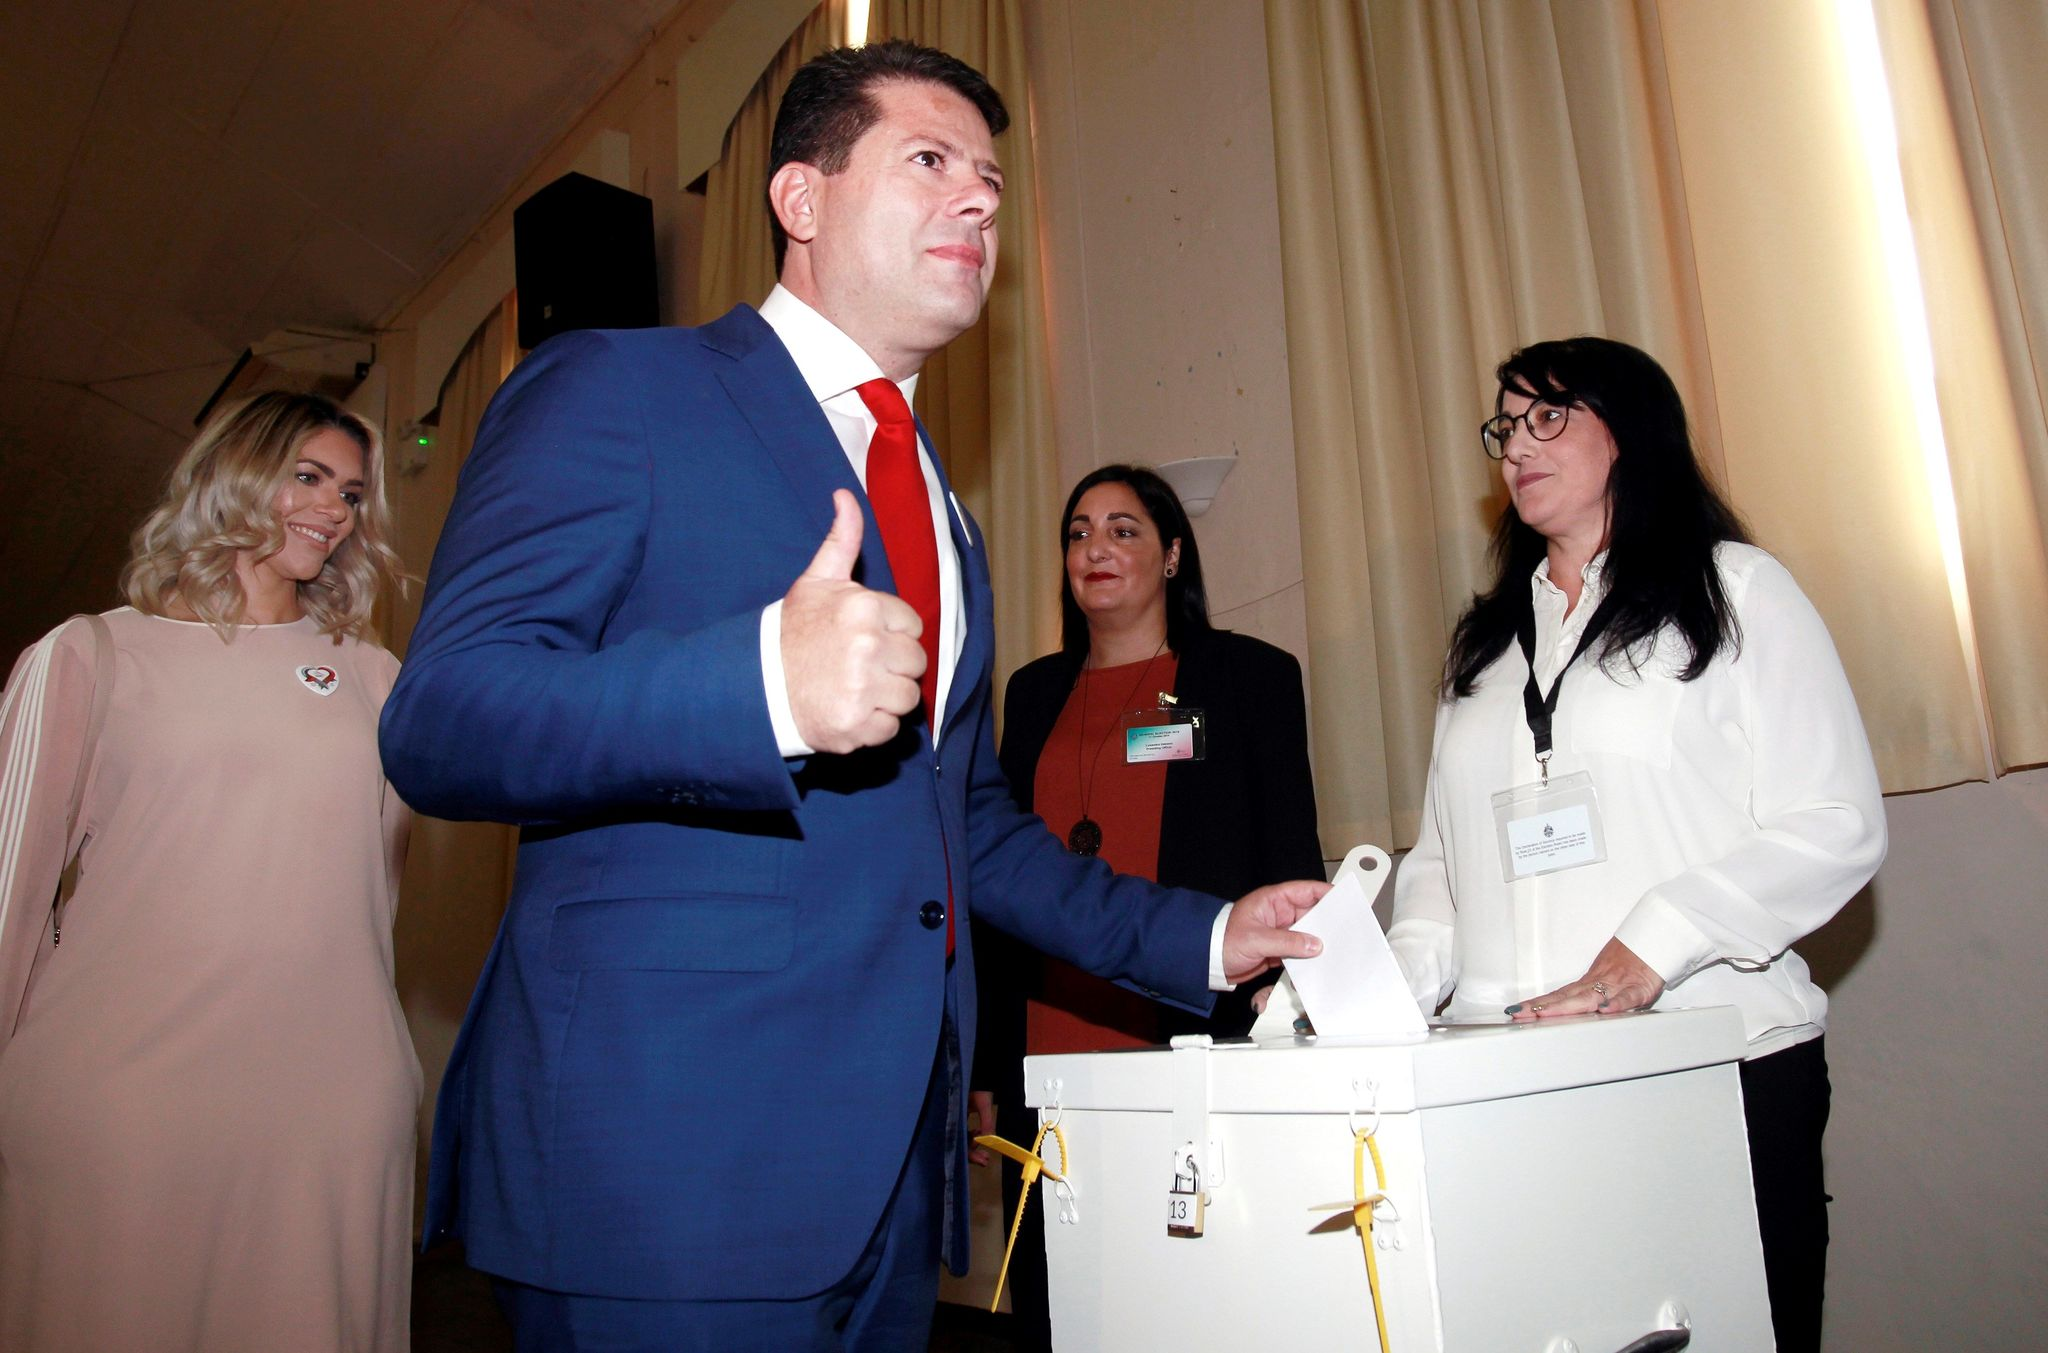 Fabian Picardo wins the Gibraltar elections again and faces his third term